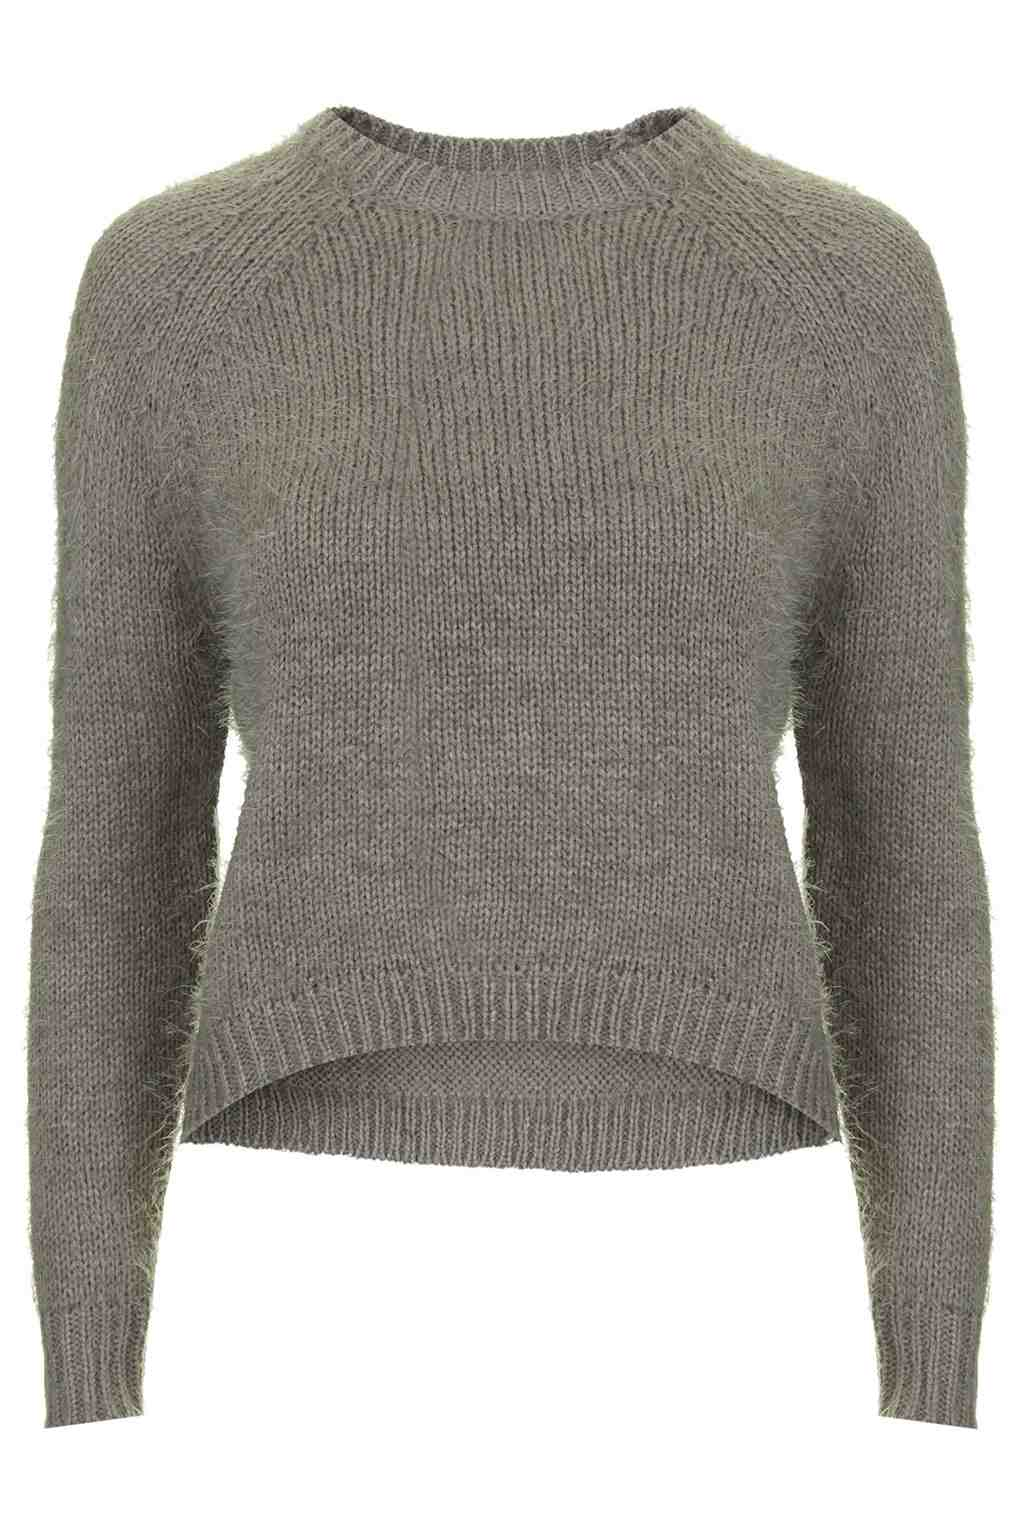 Topshop - Pull(46 €)